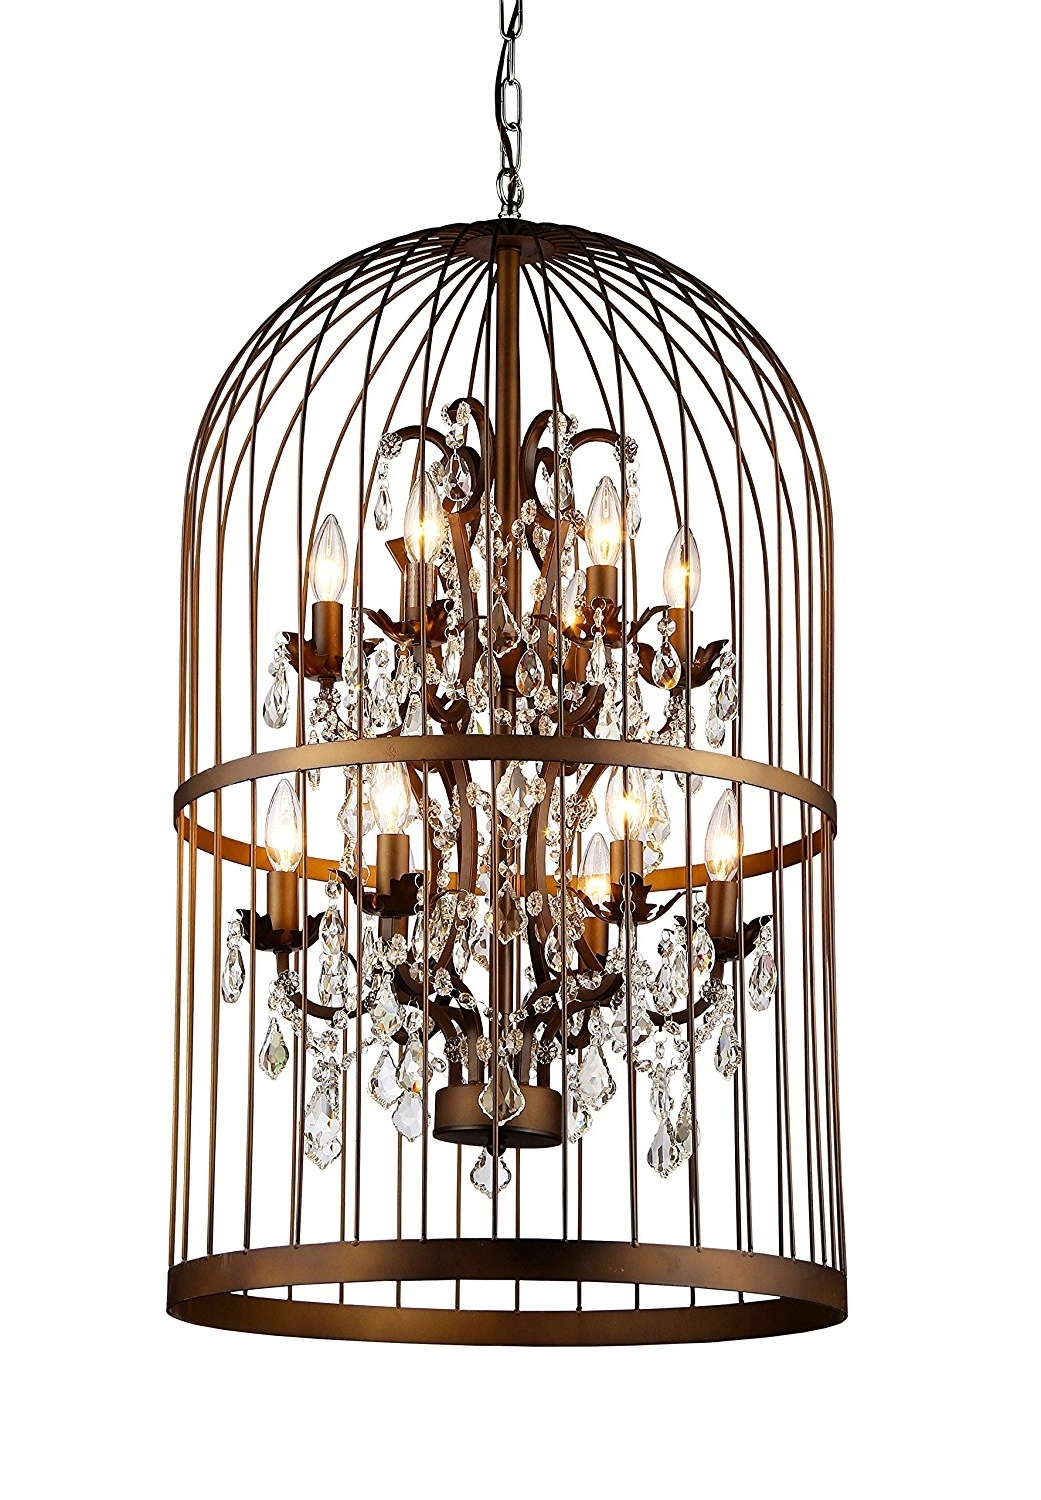 Whse Of Tiffany Rl8058B Rinee Cage Chandelier – – Amazon Regarding Newest Cage Chandeliers (View 2 of 15)